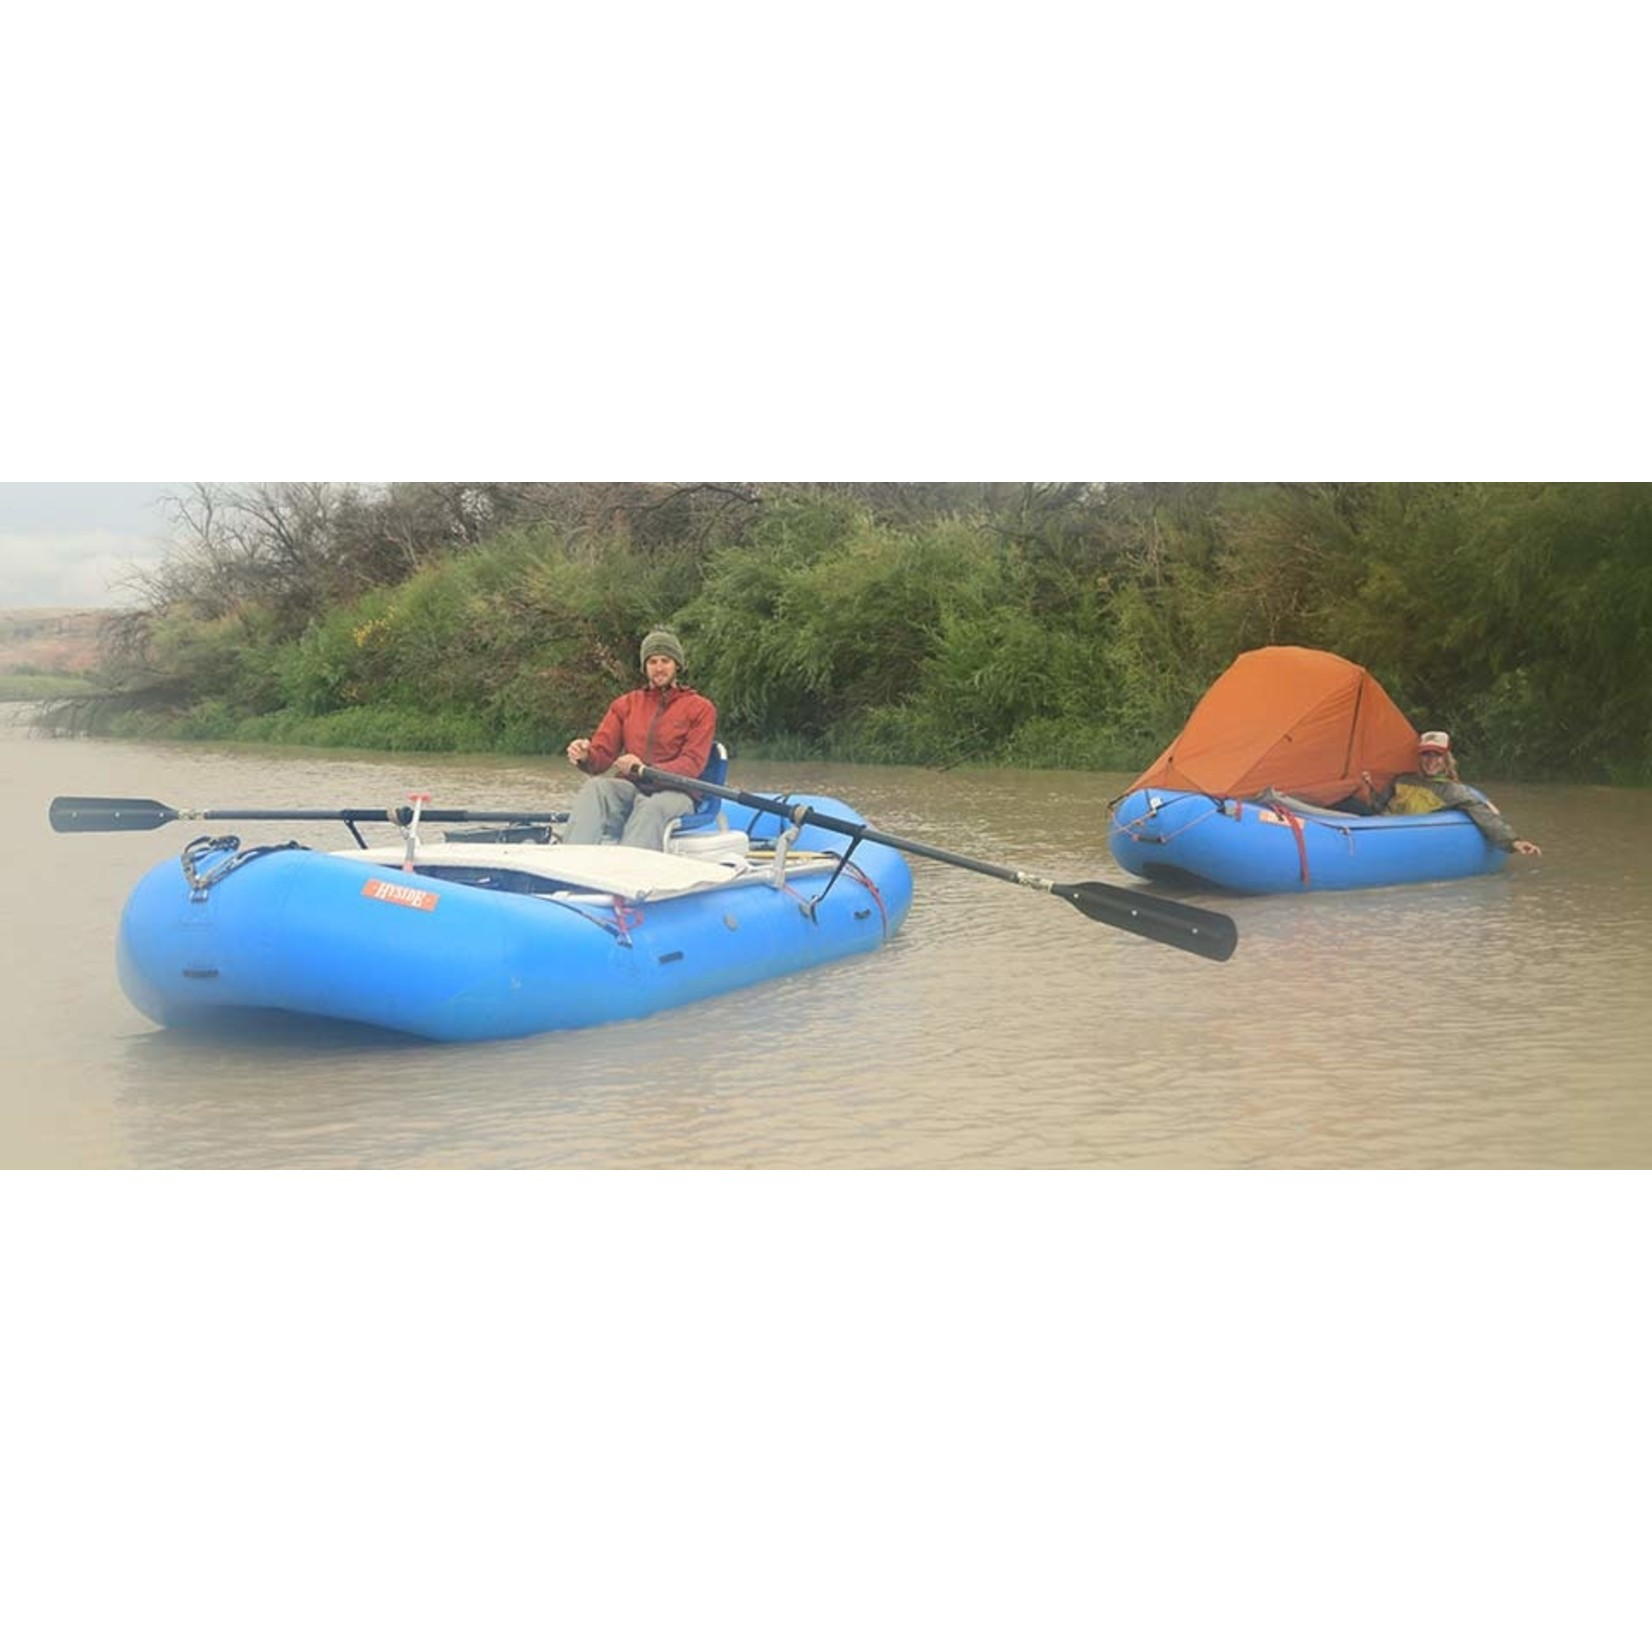 Hyside Inflatables Hyside Outfitter 14.0